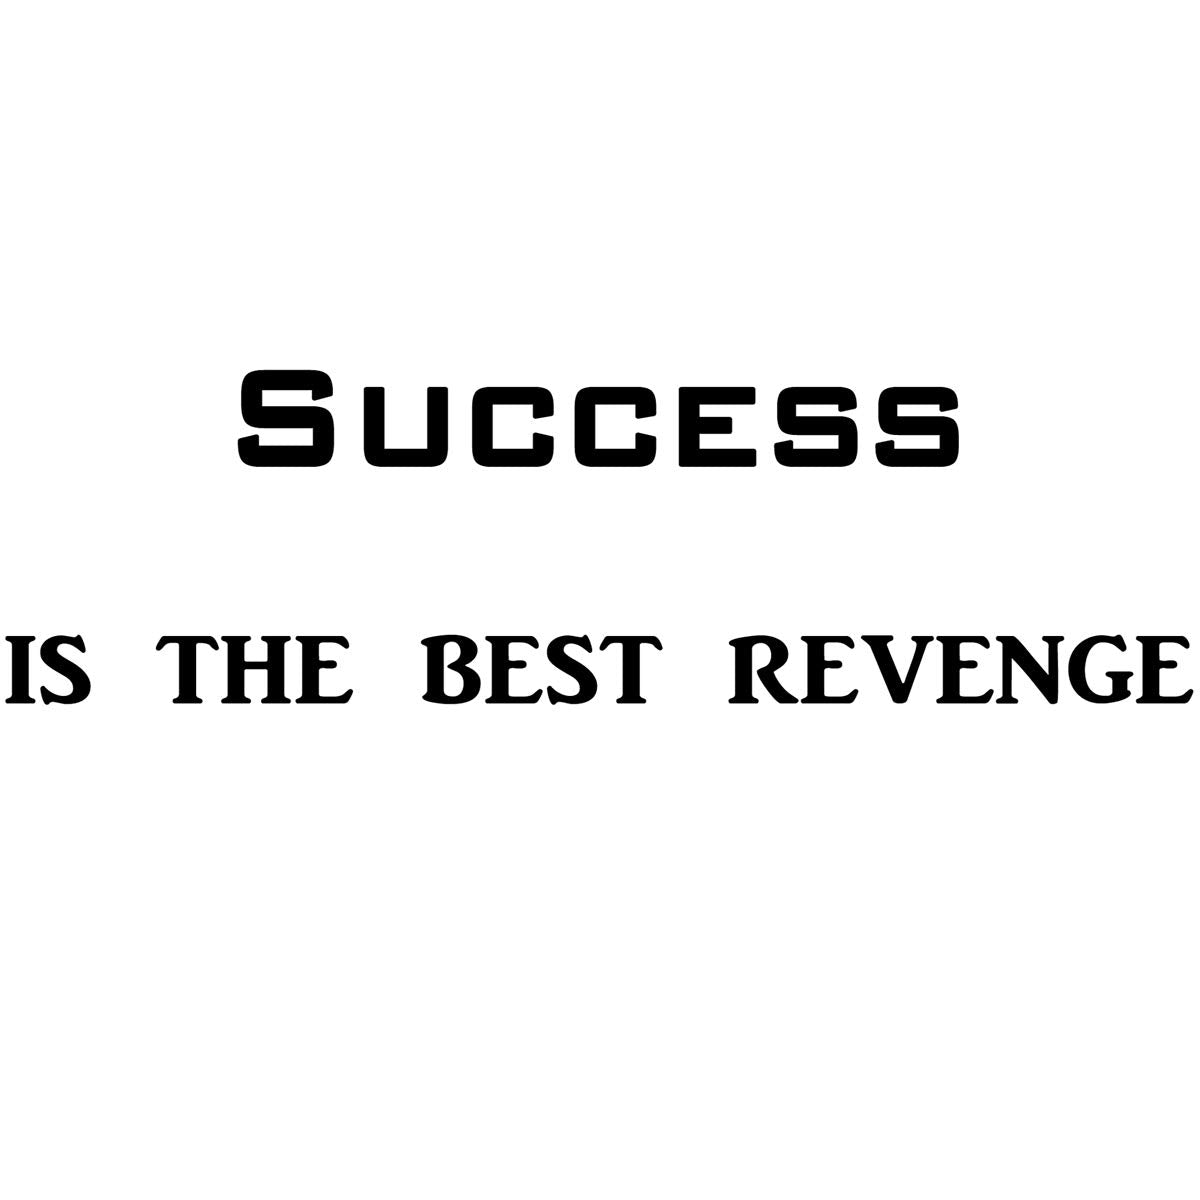 VWAQ Success is The Best Revenge Vinyl Wall Decals Encouraging Wall Quotes no background